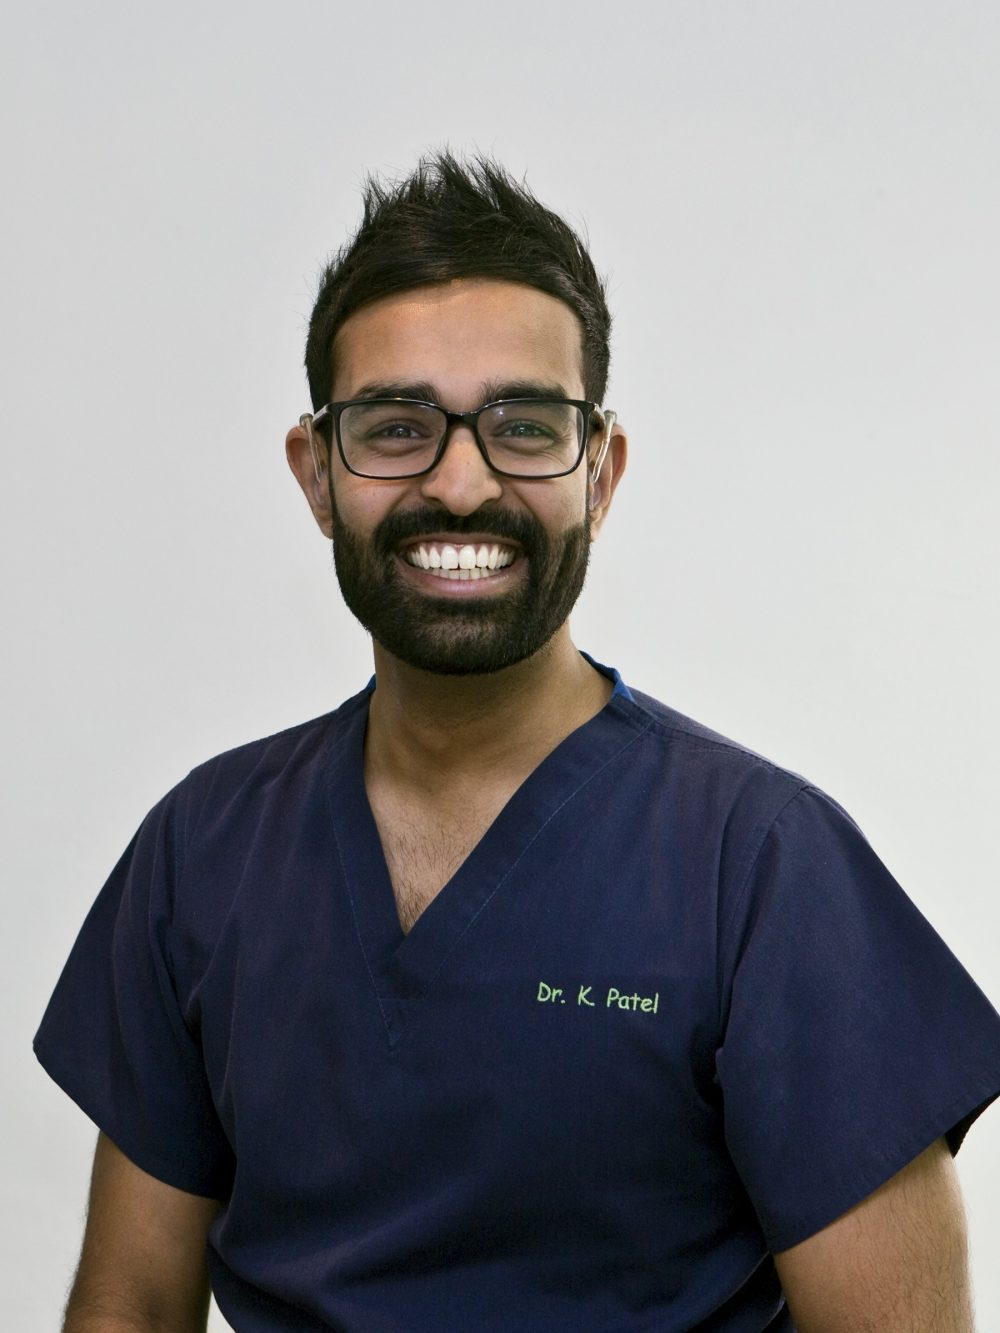 Kunal Patel the principle dentist at Etwall Dental practice